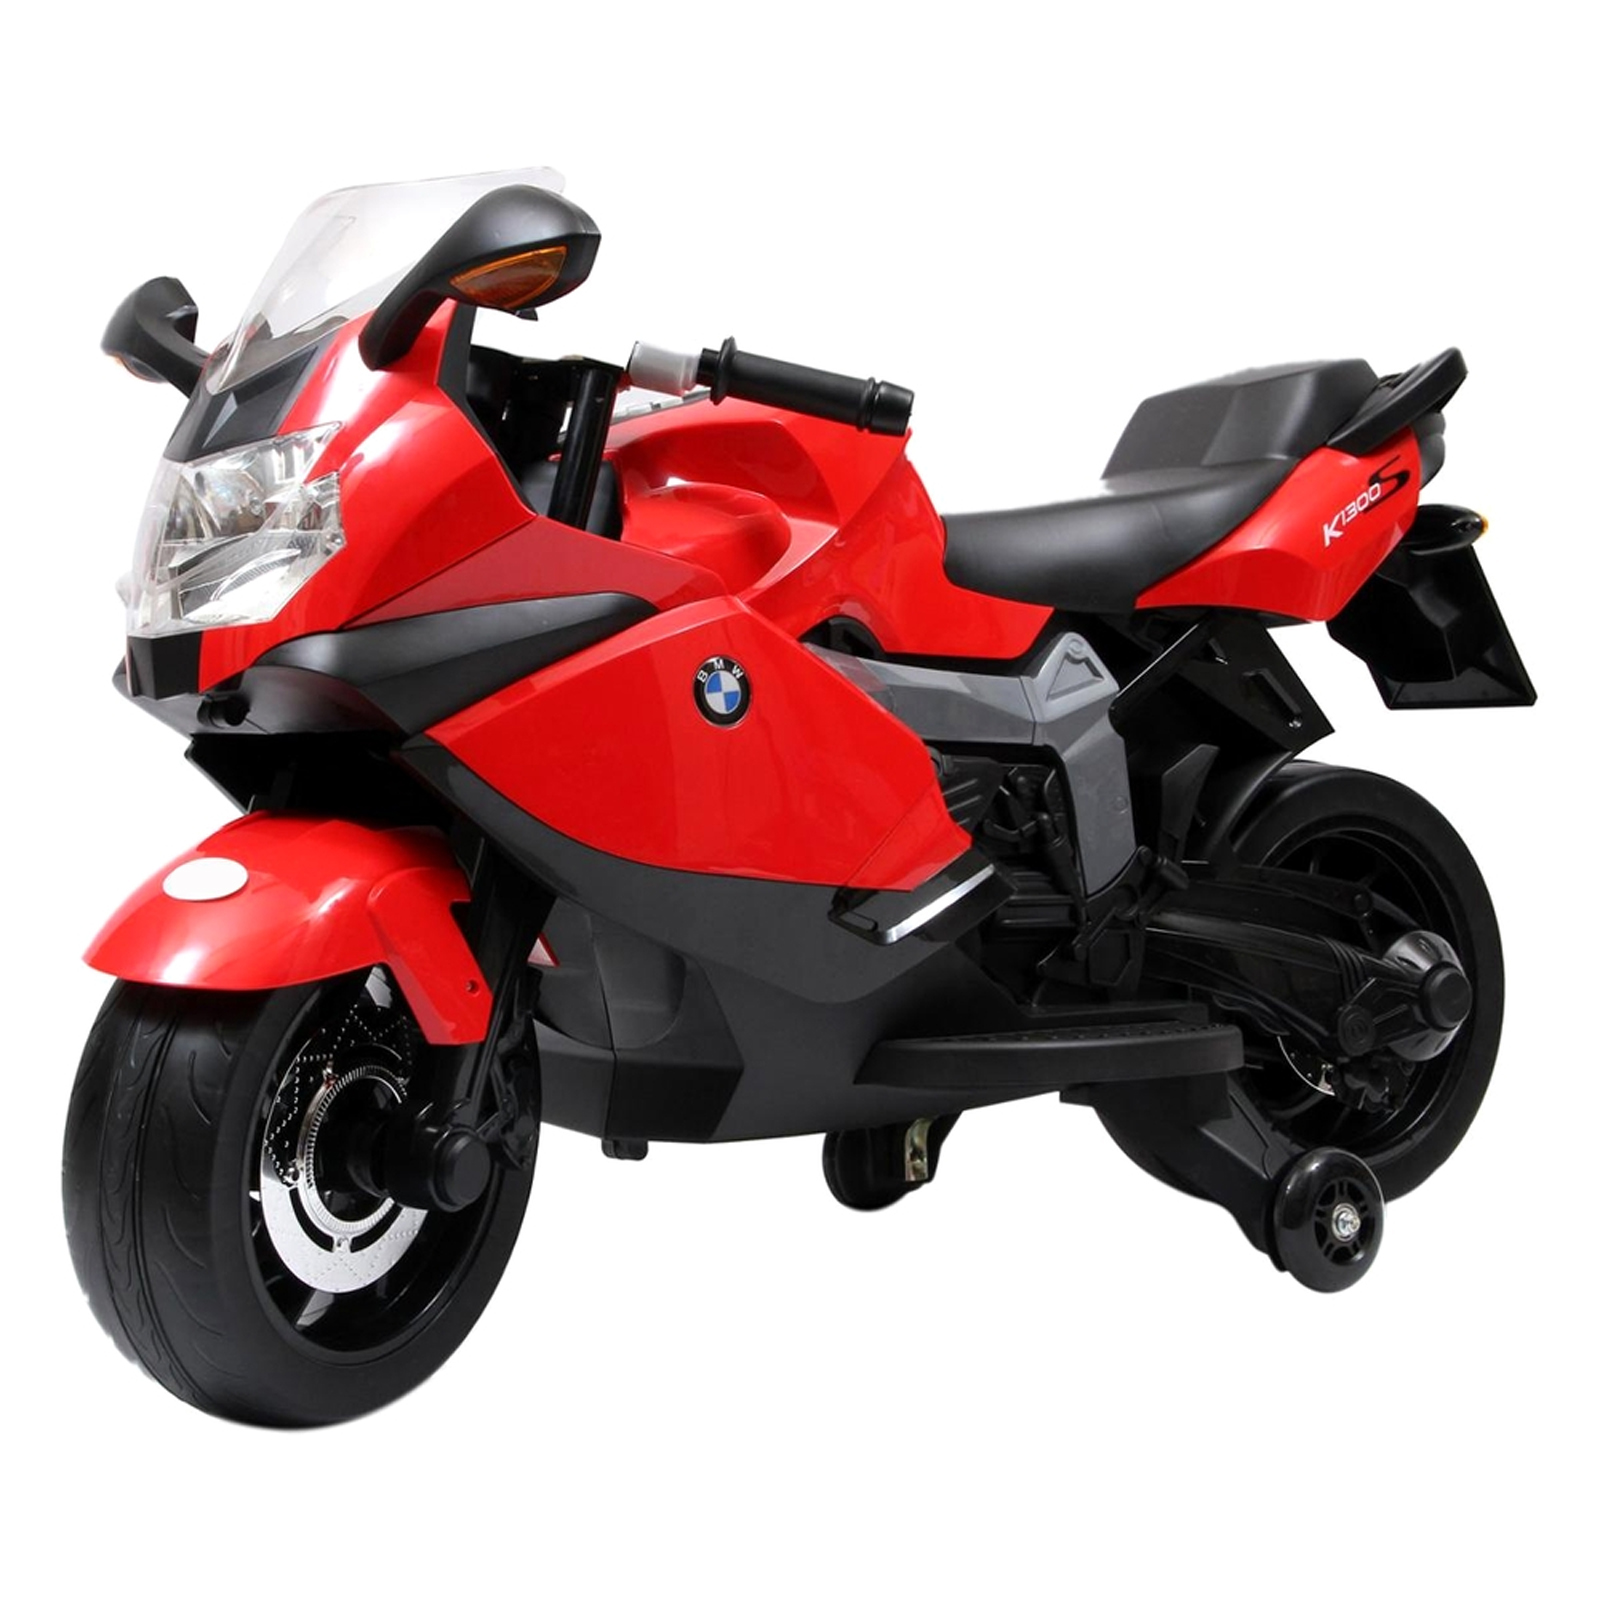 Licensed BMW Motorcycle 12V Kids Battery Powered Ride On Car - Red